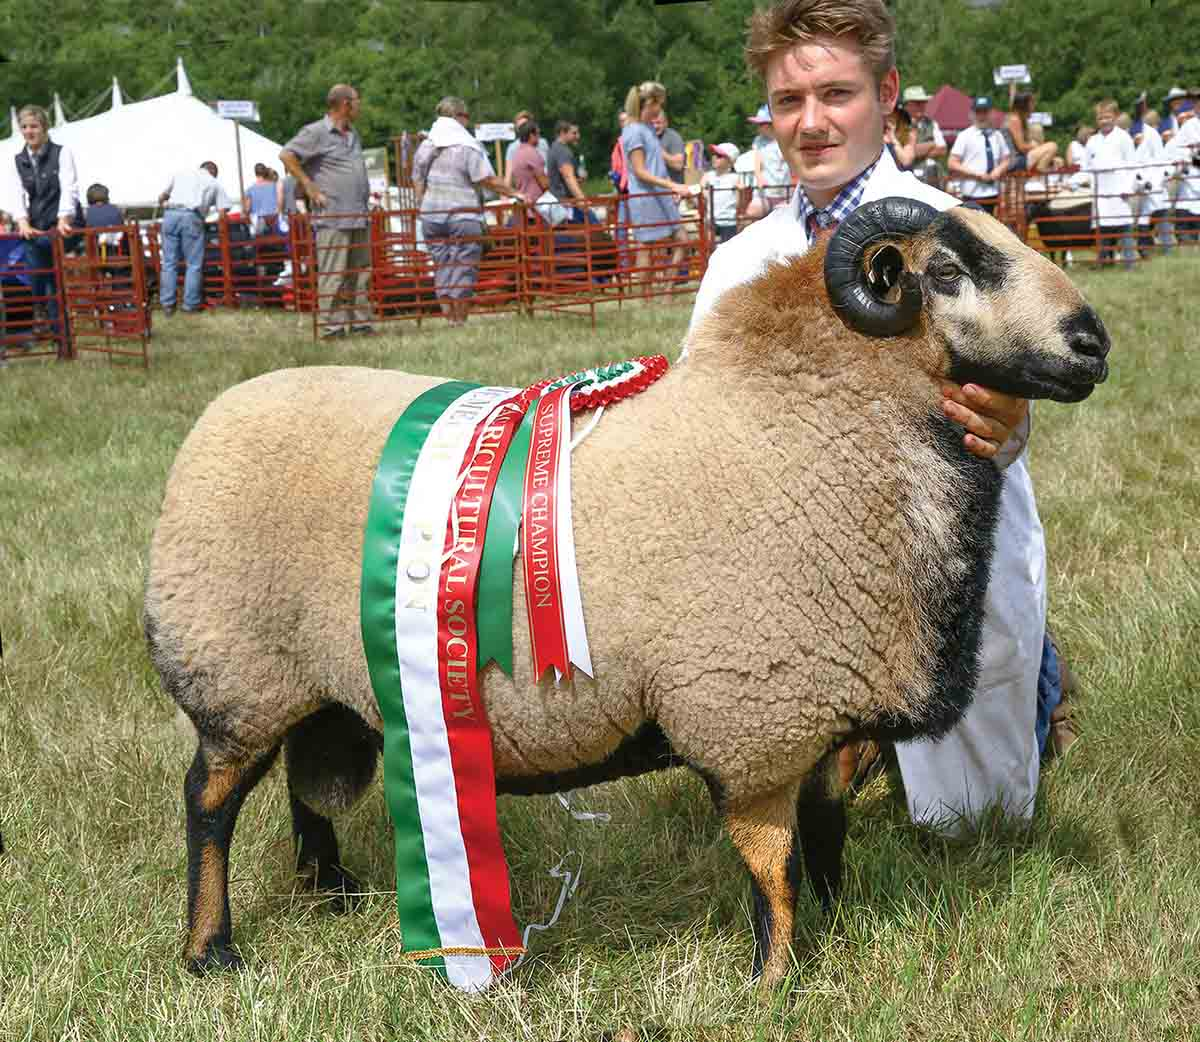 Inter-breed sheep and Welsh Badger Face champion from C., A. and R. Joseph.